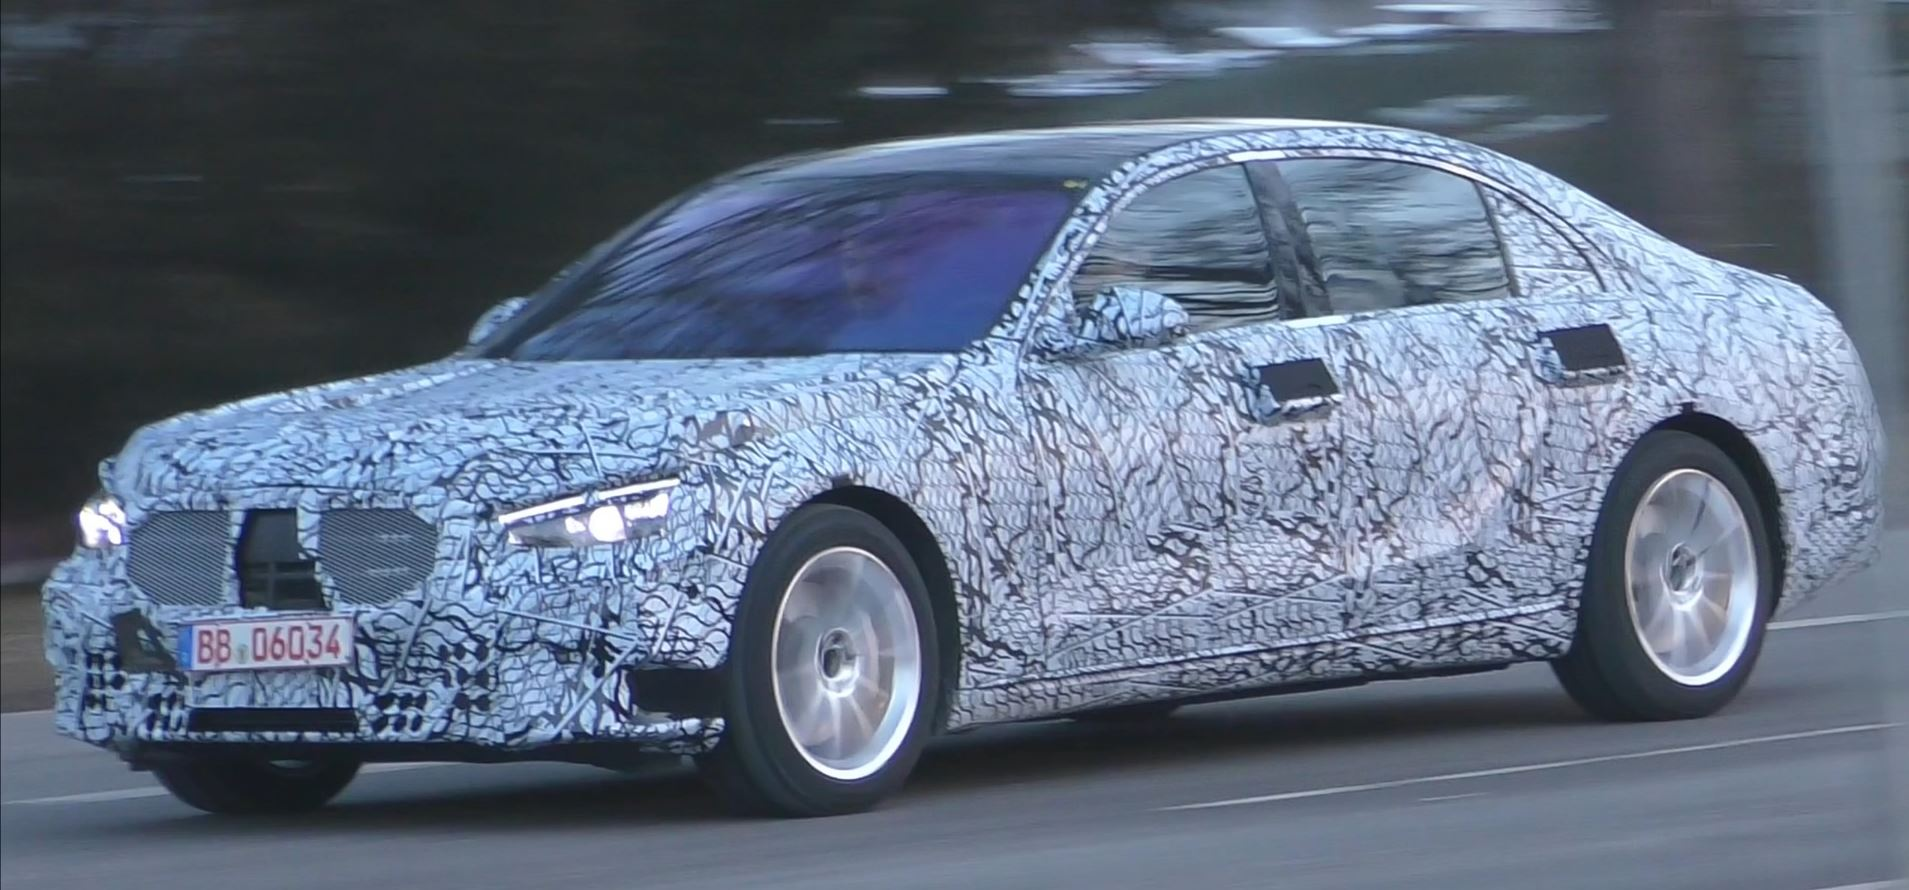 2020 mercedes s-class spied in germany  has smoking problem